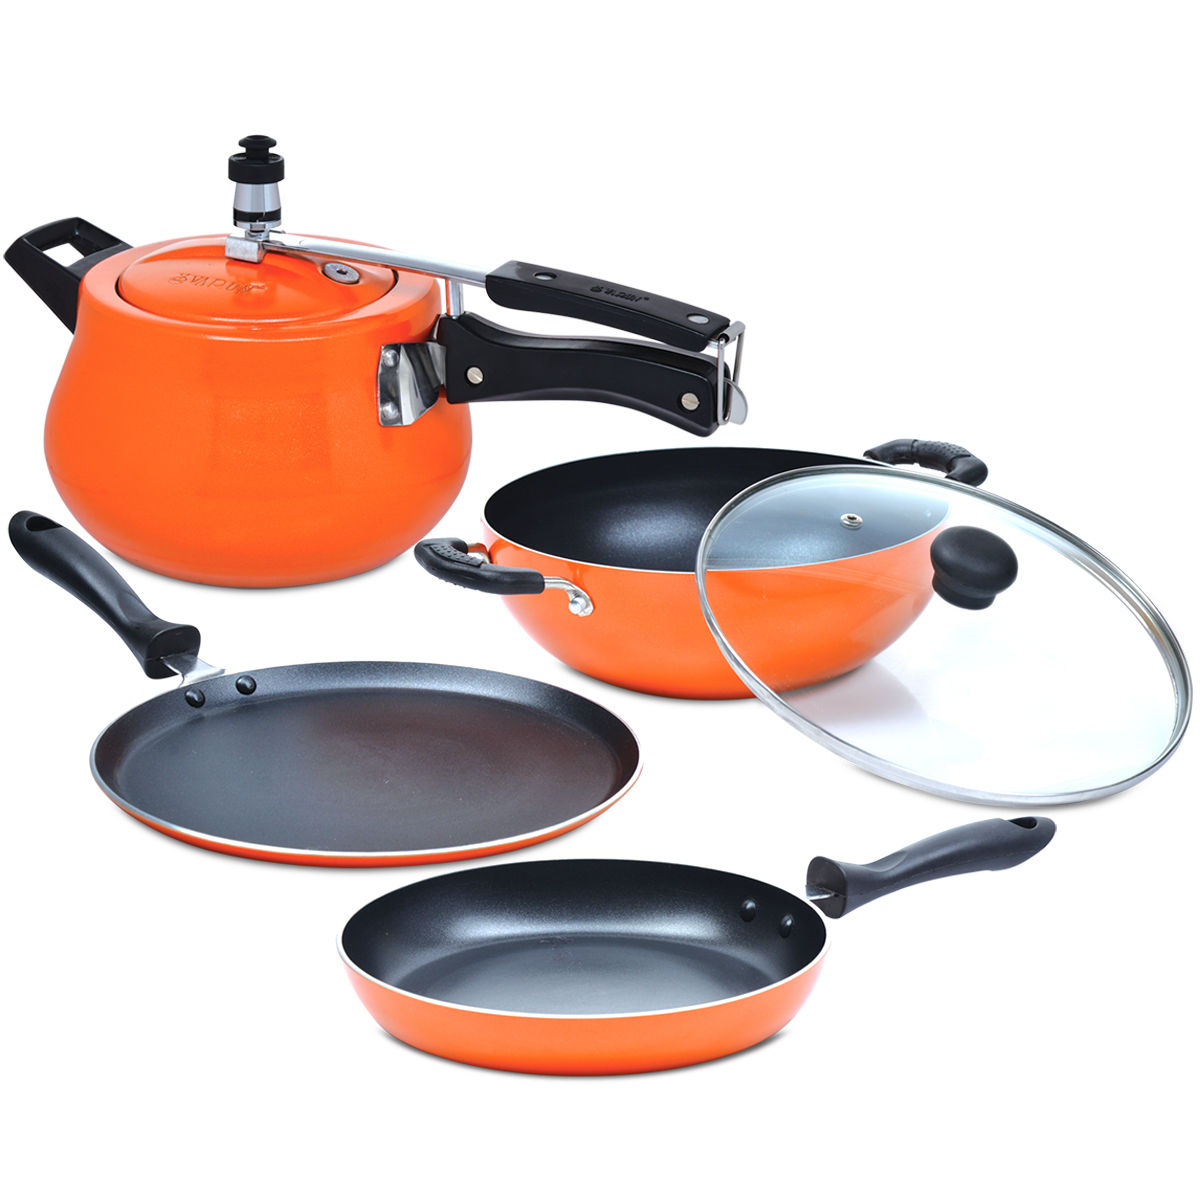 Buy 5 Pcs Induction Based Non Stick Cookware Set Online At Best